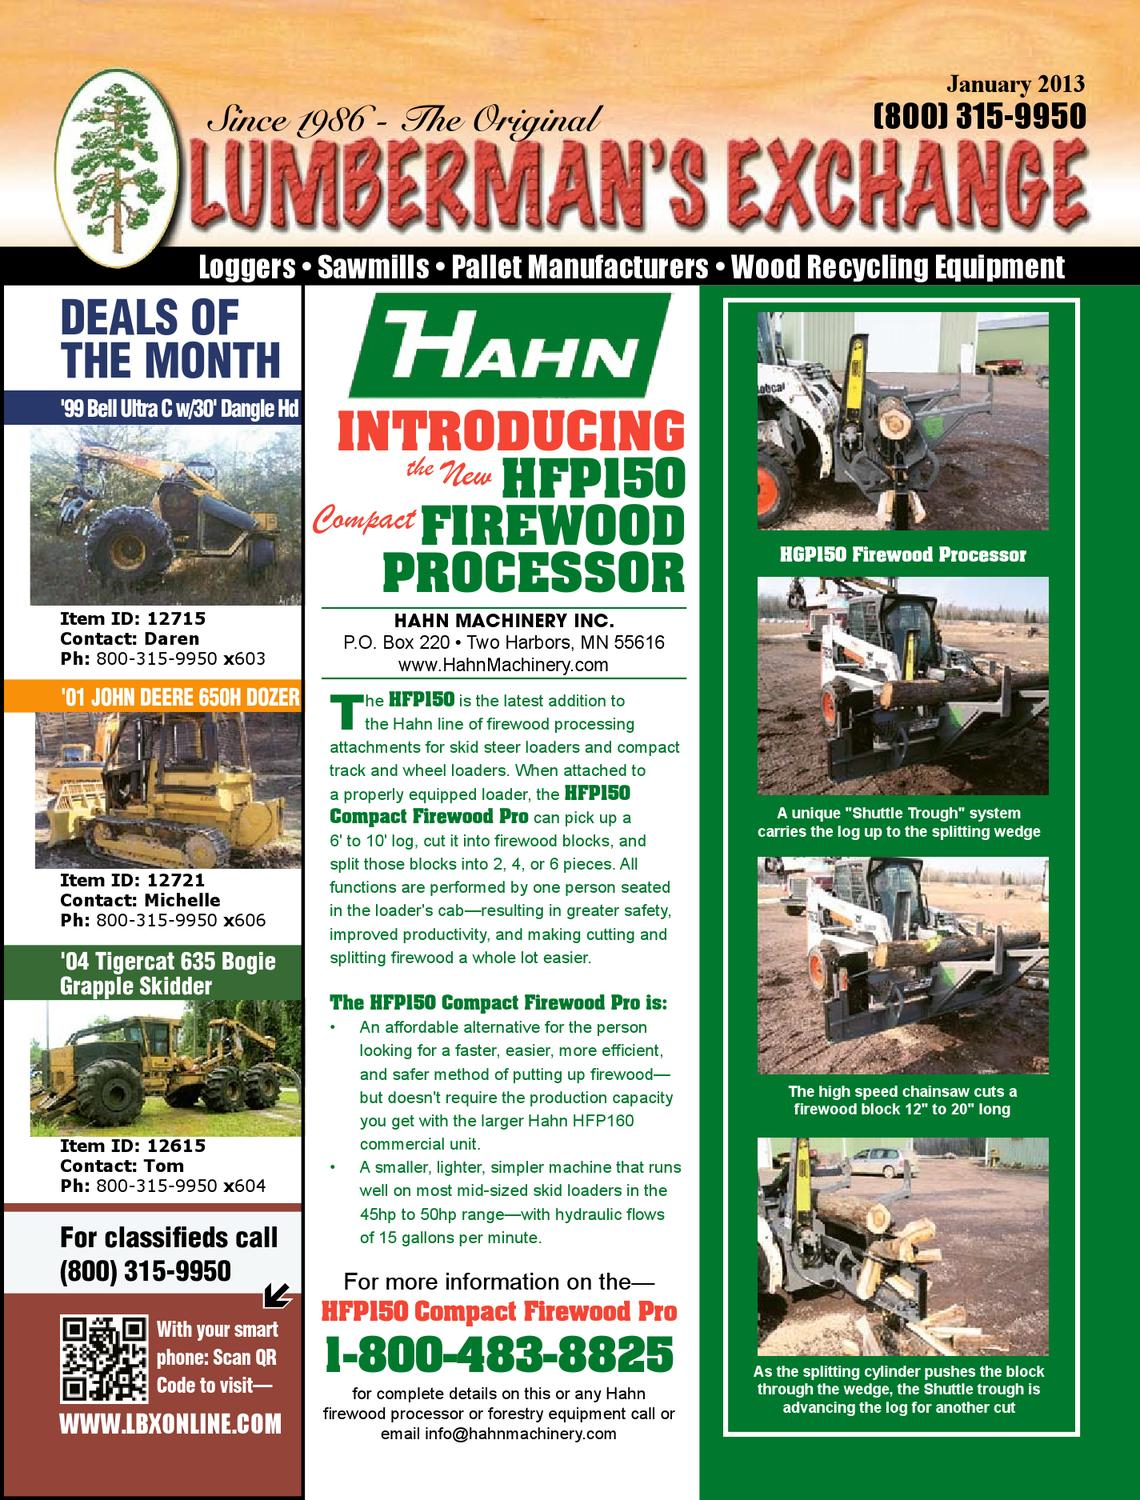 The Lumberman's Exchange brought to you by LBX Online by